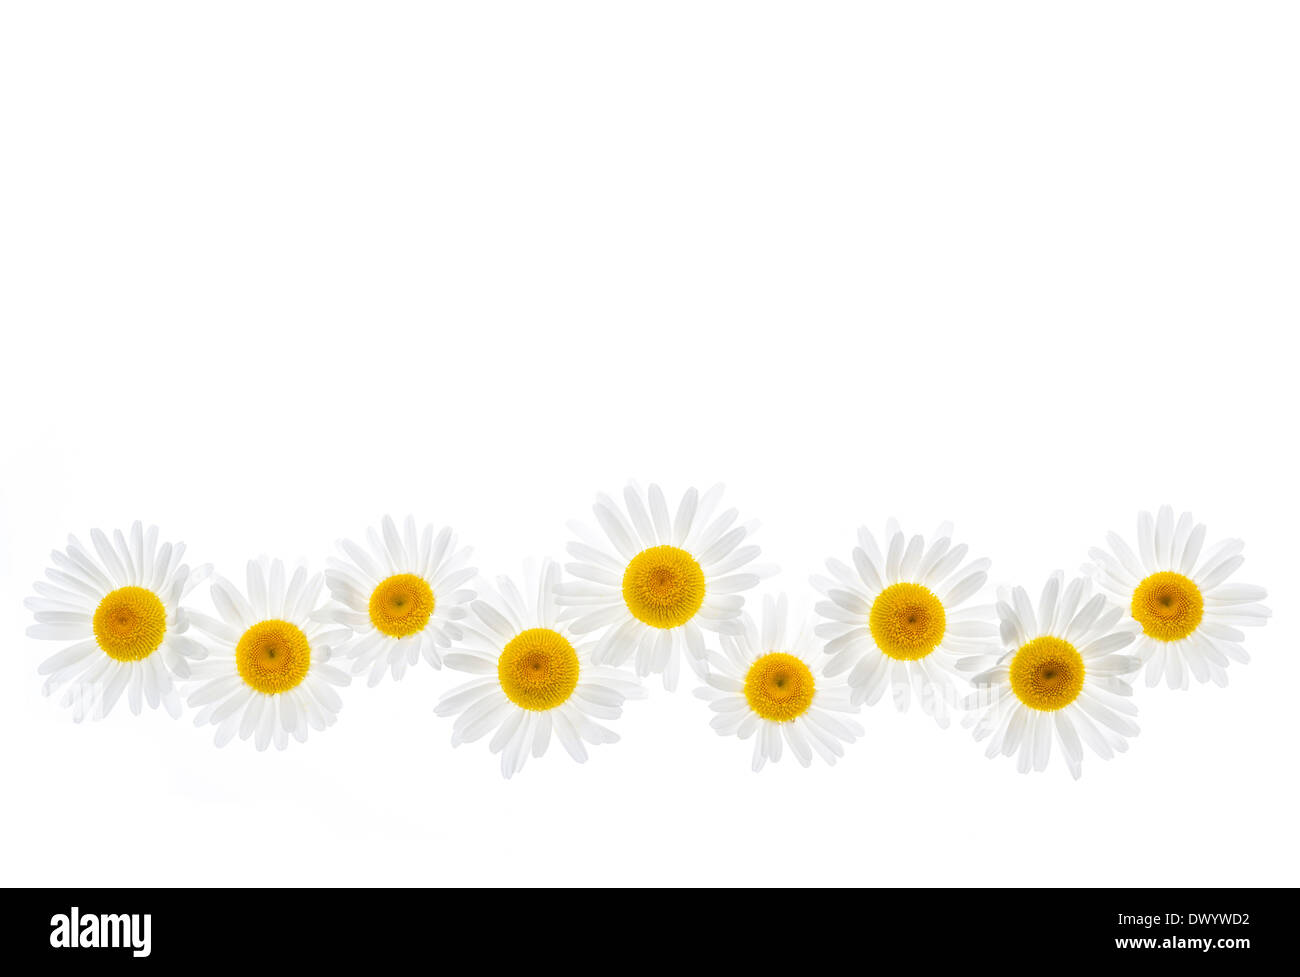 Flower border of oxeye daisies isolated on white background stock flower border of oxeye daisies isolated on white background izmirmasajfo